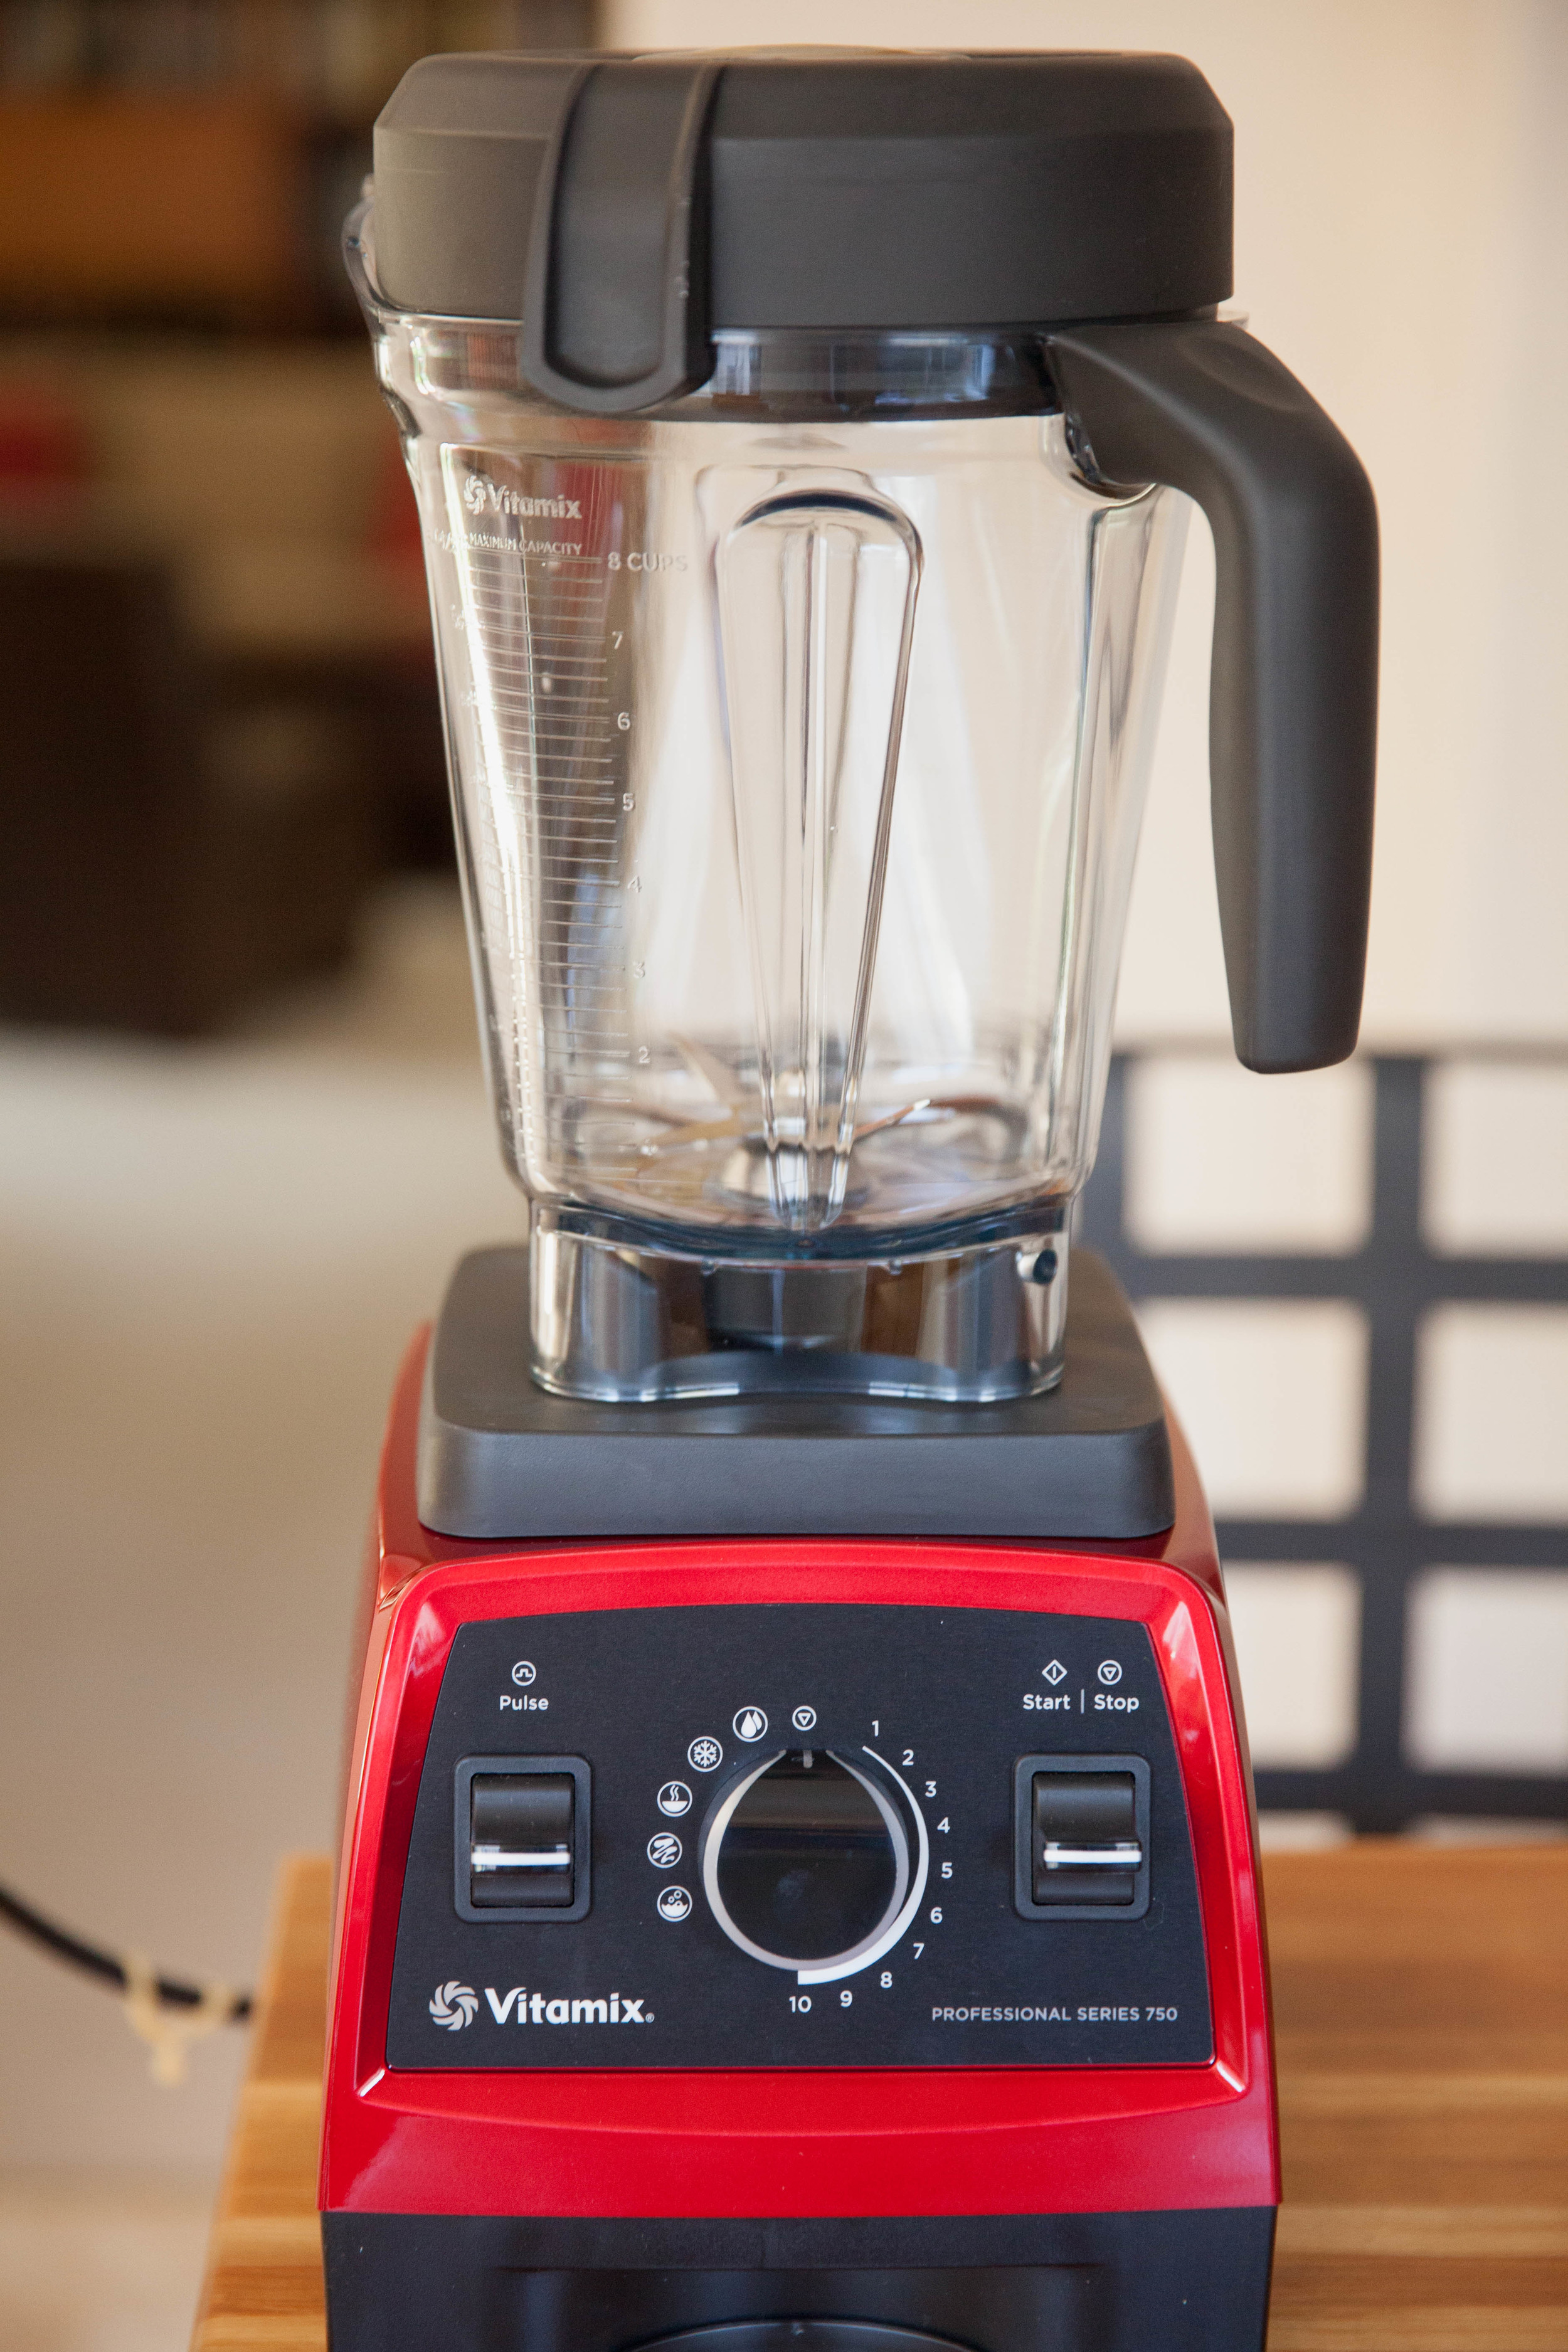 A long time ago, I purchased one of the original Vitamix, and while I love every minute of my old machine, it makes a lot of noise and takes up a lot of counter space. This one by comparison is so much smaller and quieter. I can't wait to use it tomorrow morning for my smoothie. I am still disappointed about not being able to do my photo session, but I guess I will have to be a little patient.